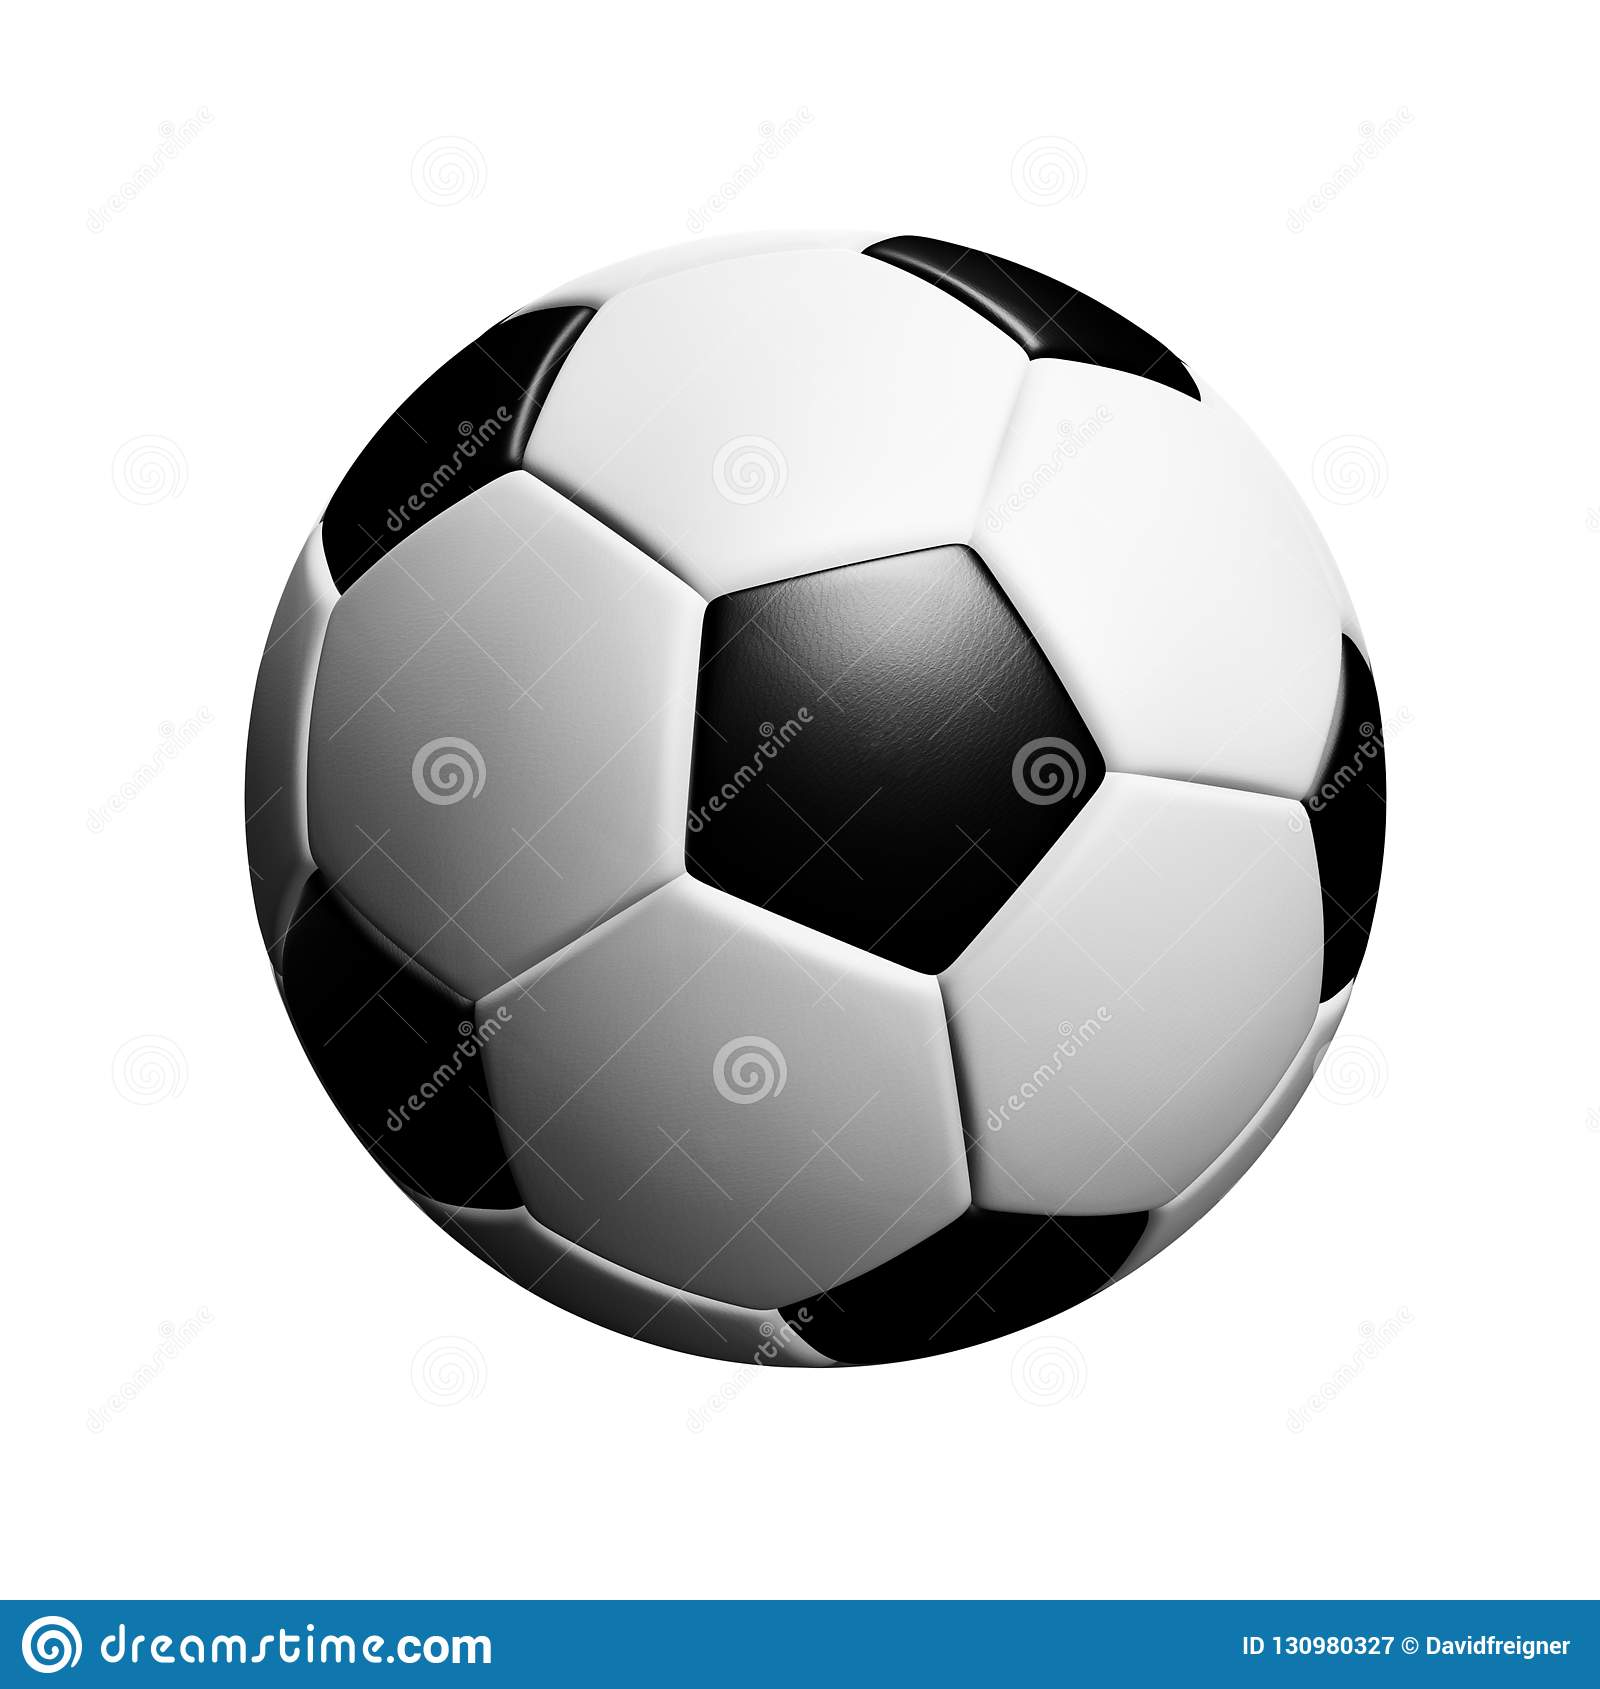 Classic soccerball lying on a piece of meadow